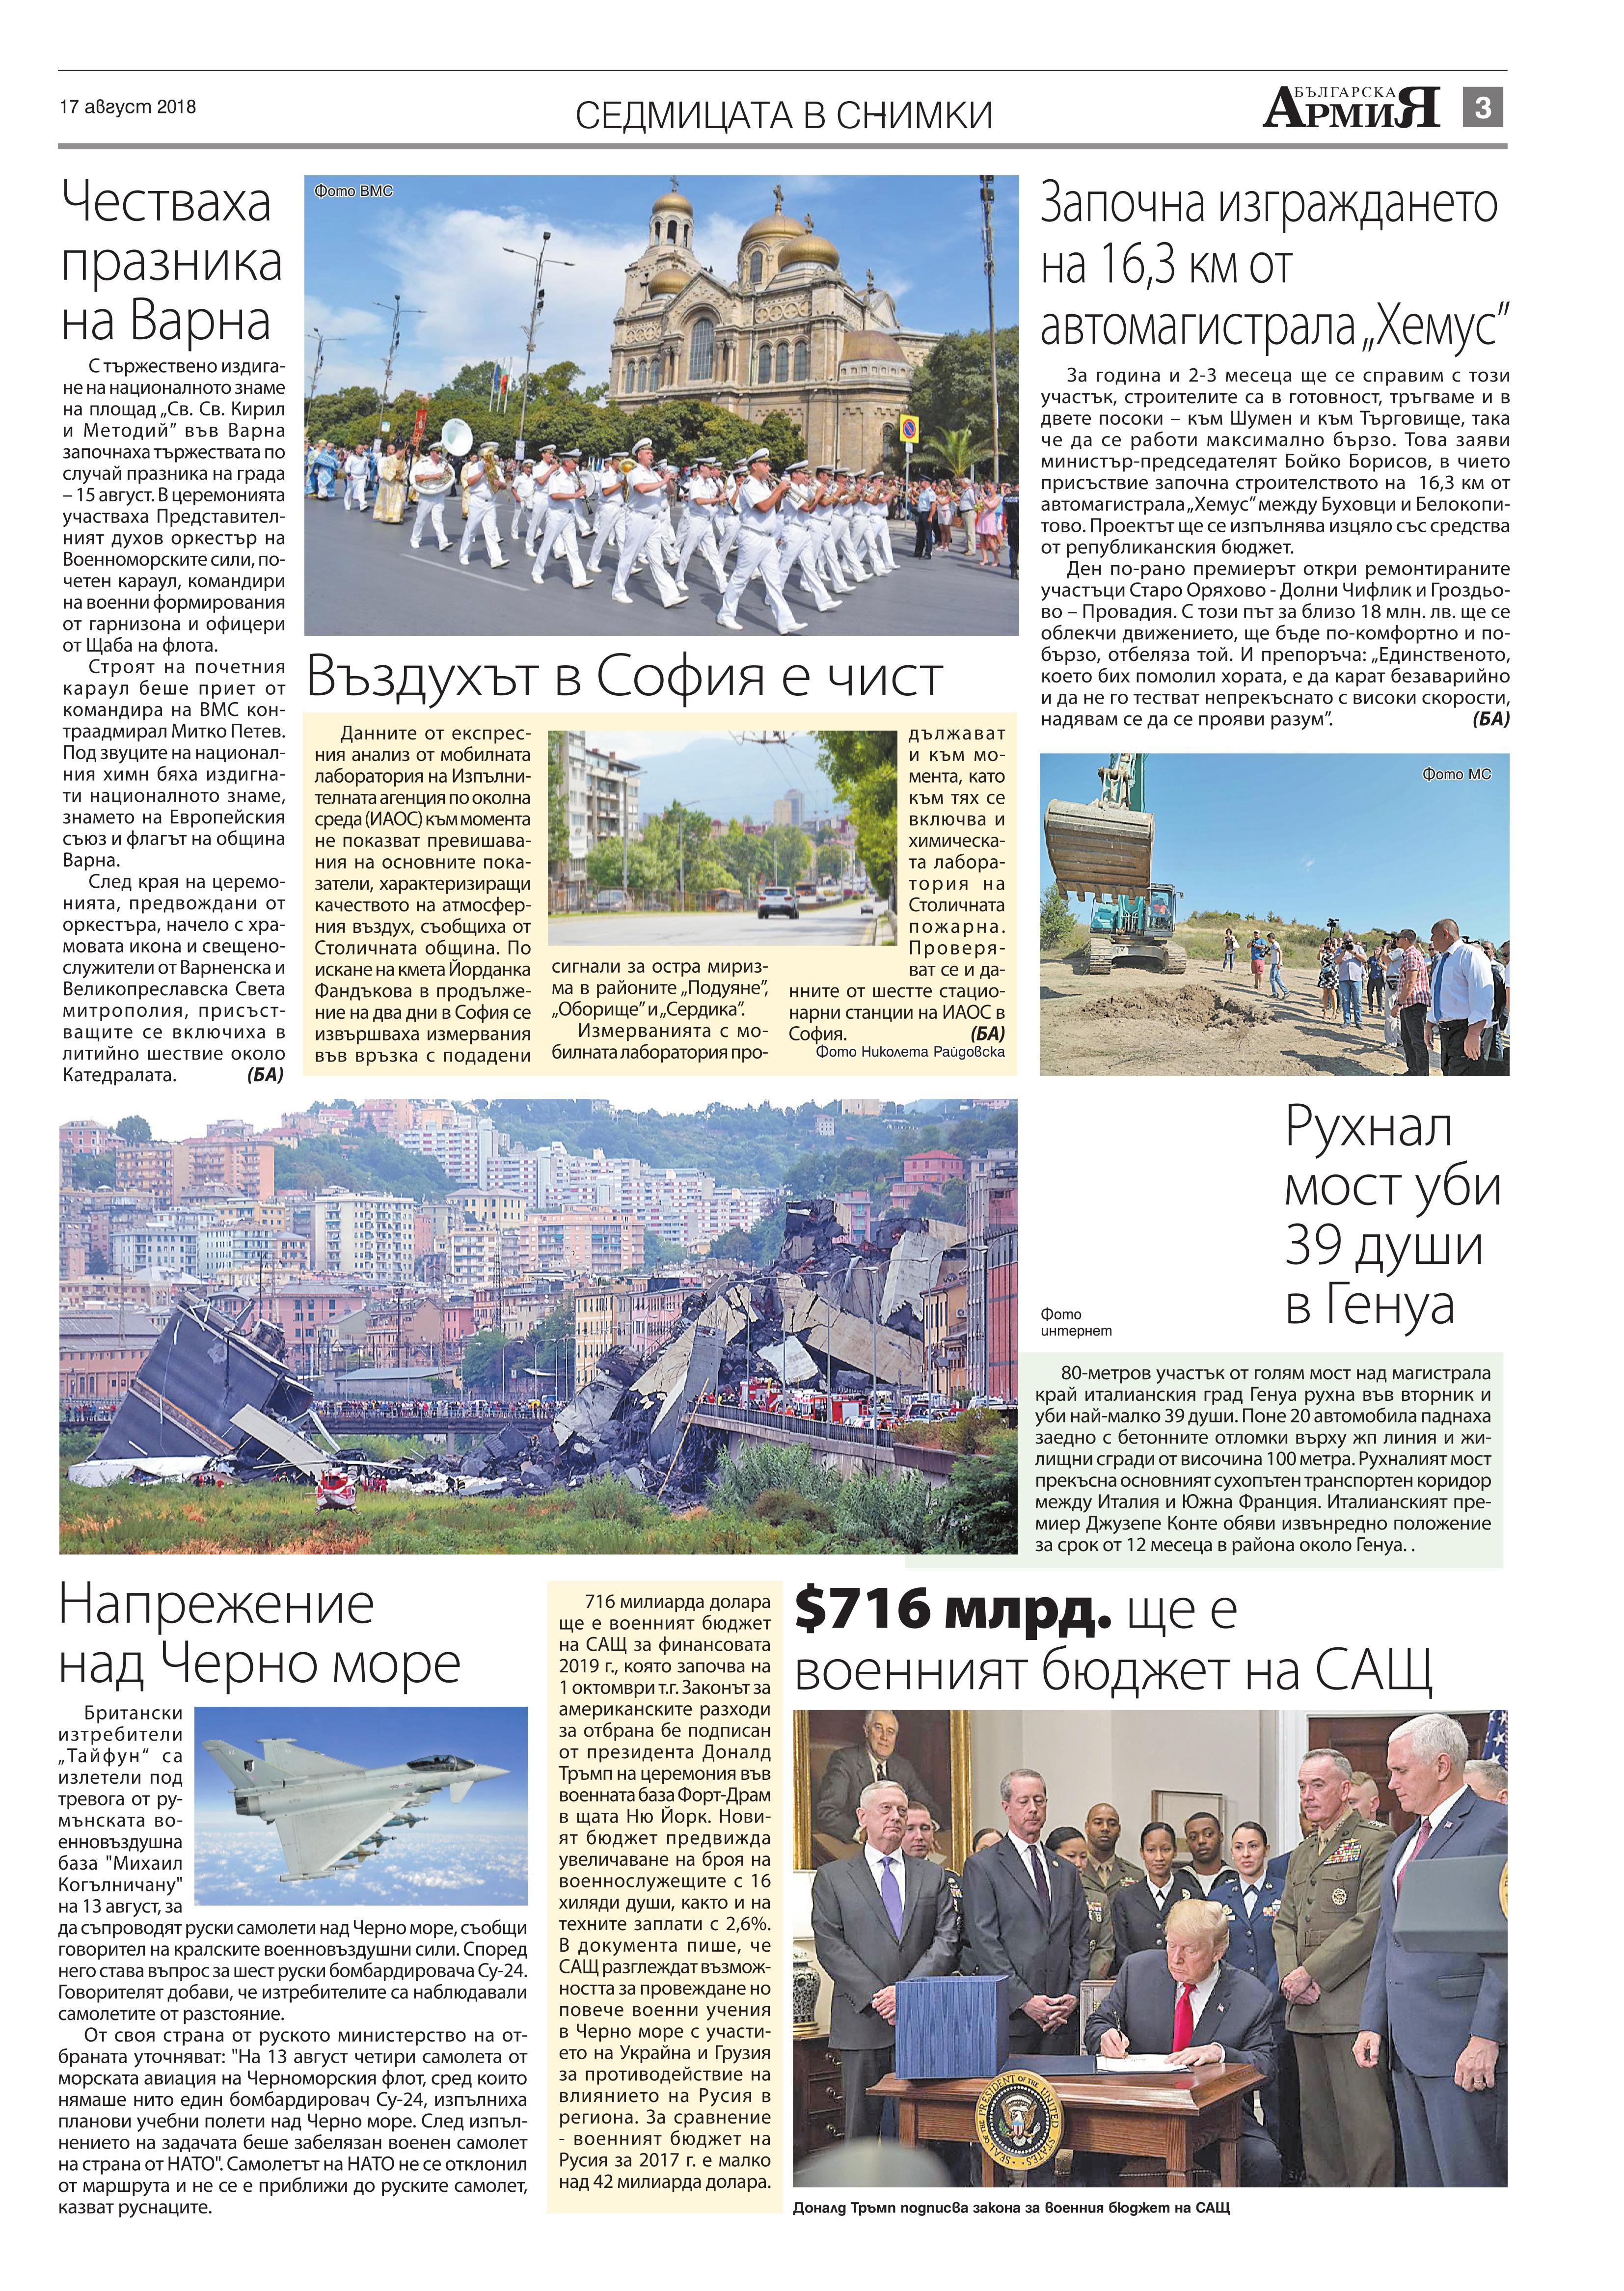 https://armymedia.bg/wp-content/uploads/2015/06/03.page1_-59.jpg